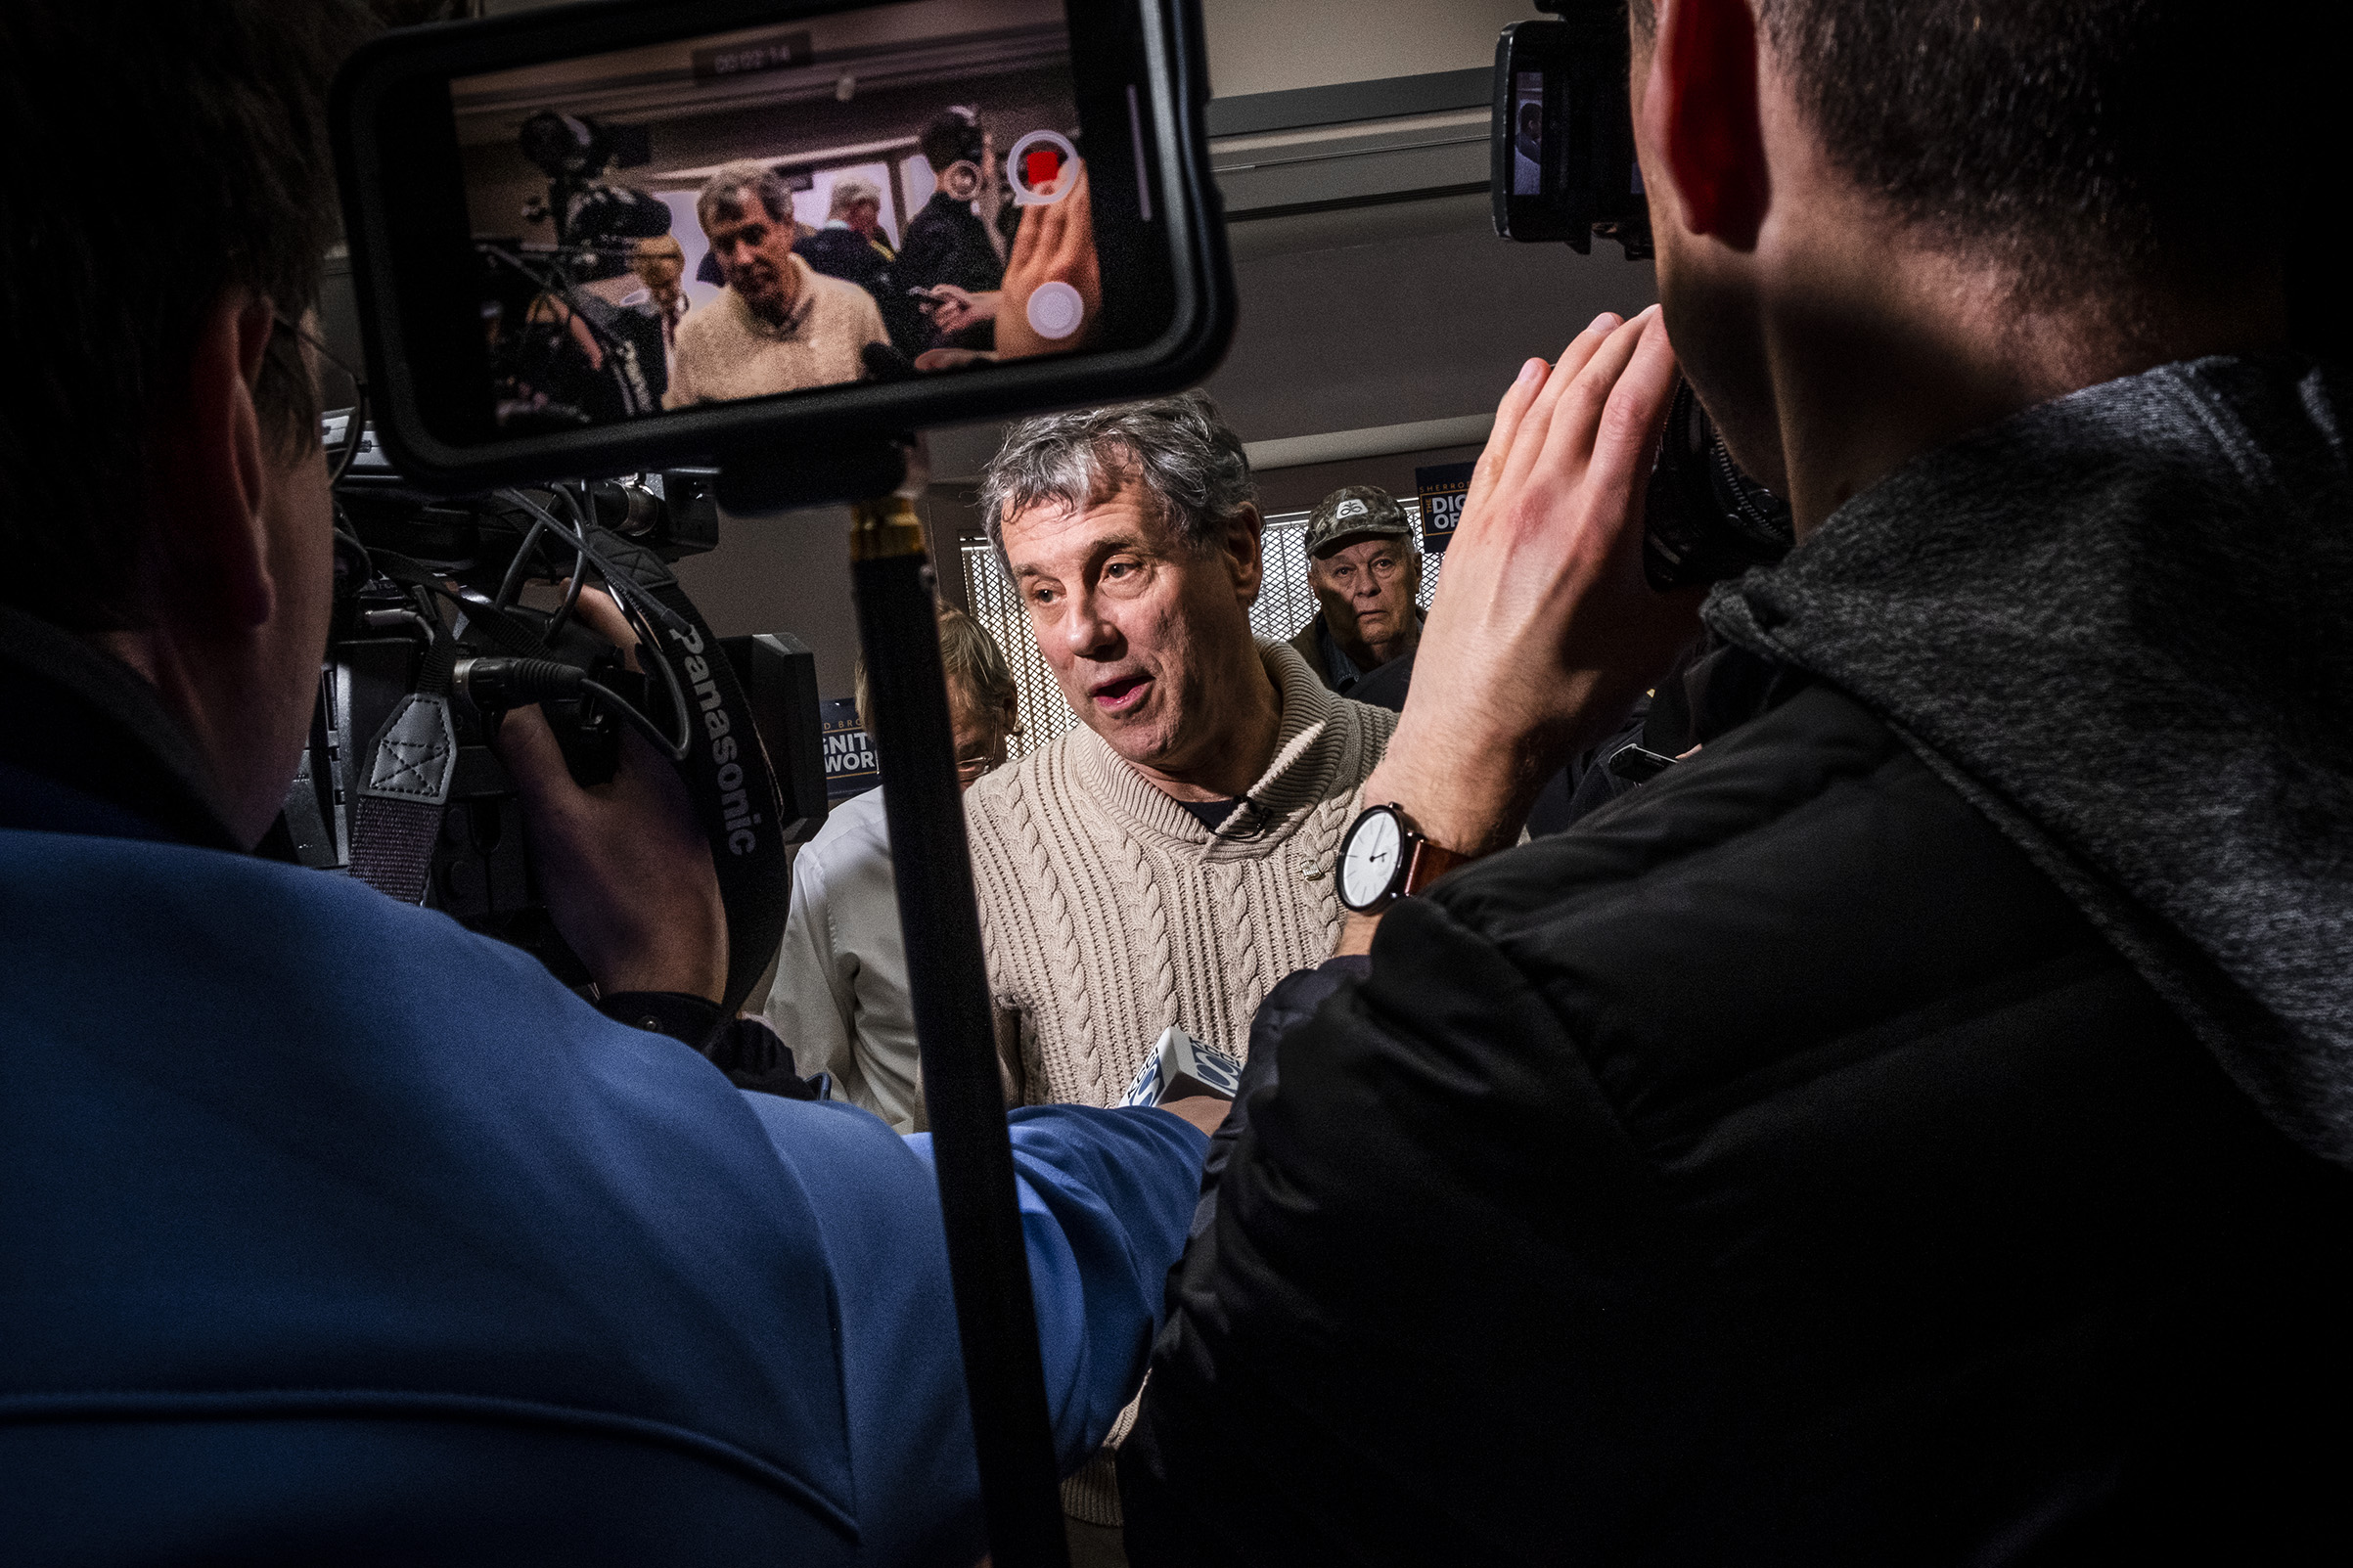 Ohio Sen. Sherrod Brown                    speaks to press during a roundtable with local farmers during his Dignity of Work tour, at                   Perry Public Library in Perry, IA on Feb. 1, 2019.